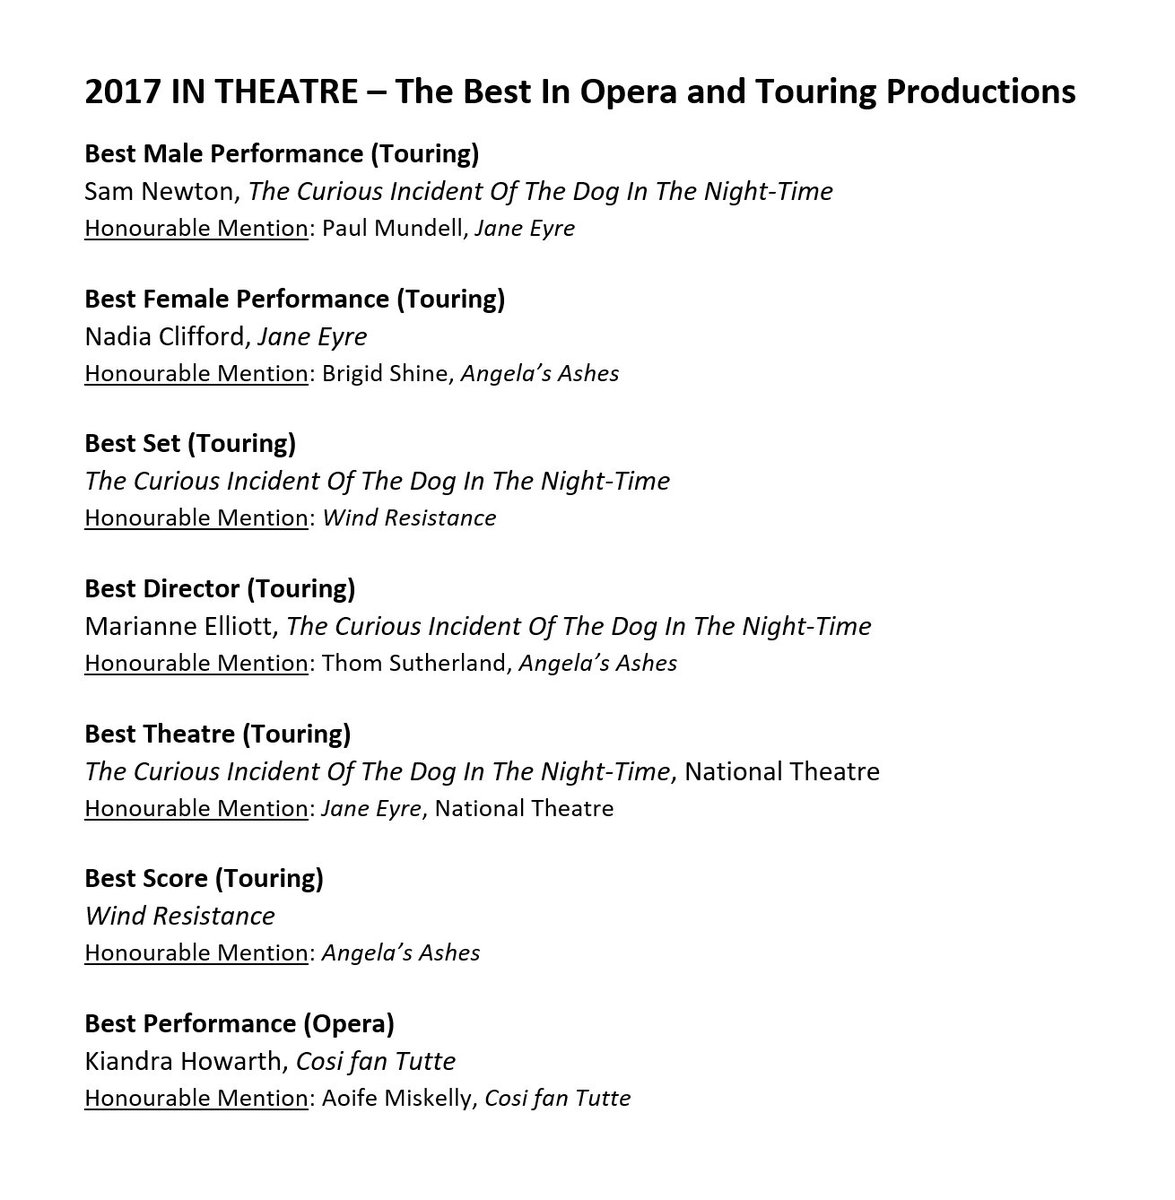 karine polwart on twitter thanks simon httpstcofkklxcei  and best score on tour throughout the year as well as best performance  in opera ni theatre nominations to follow soonpictwittercomxblzwdaiz